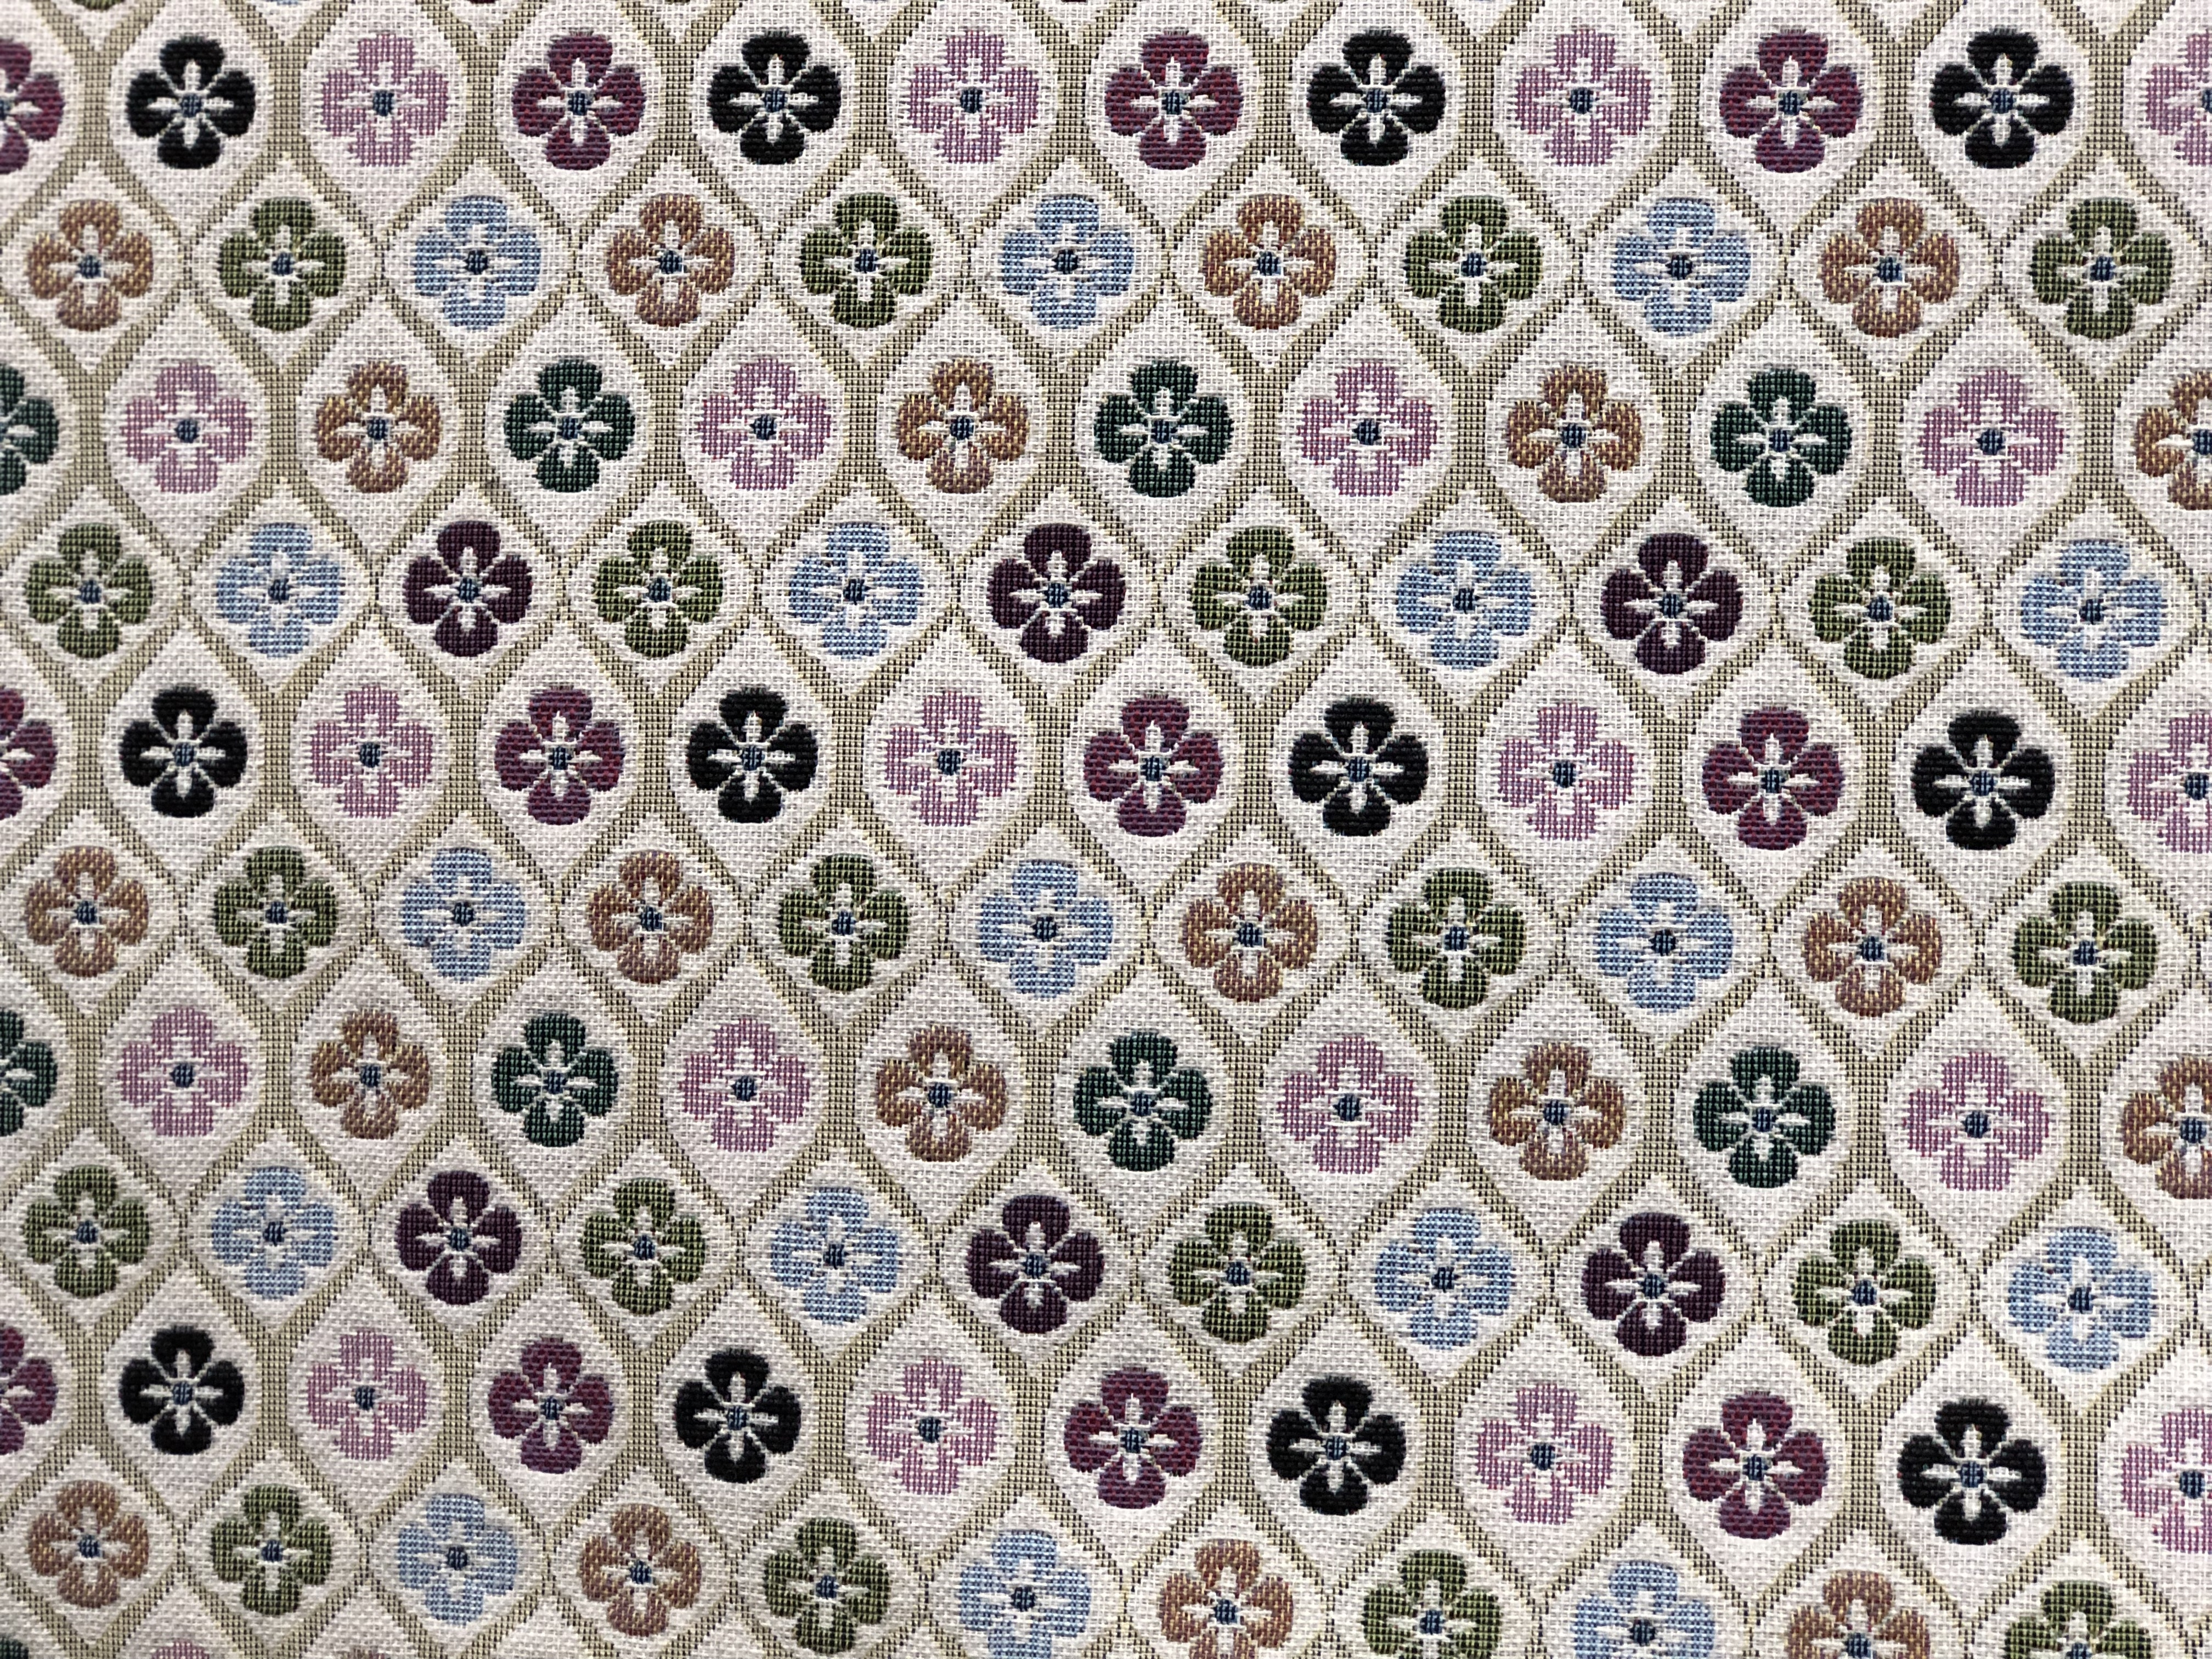 Floral Tapestry Fabric 00033